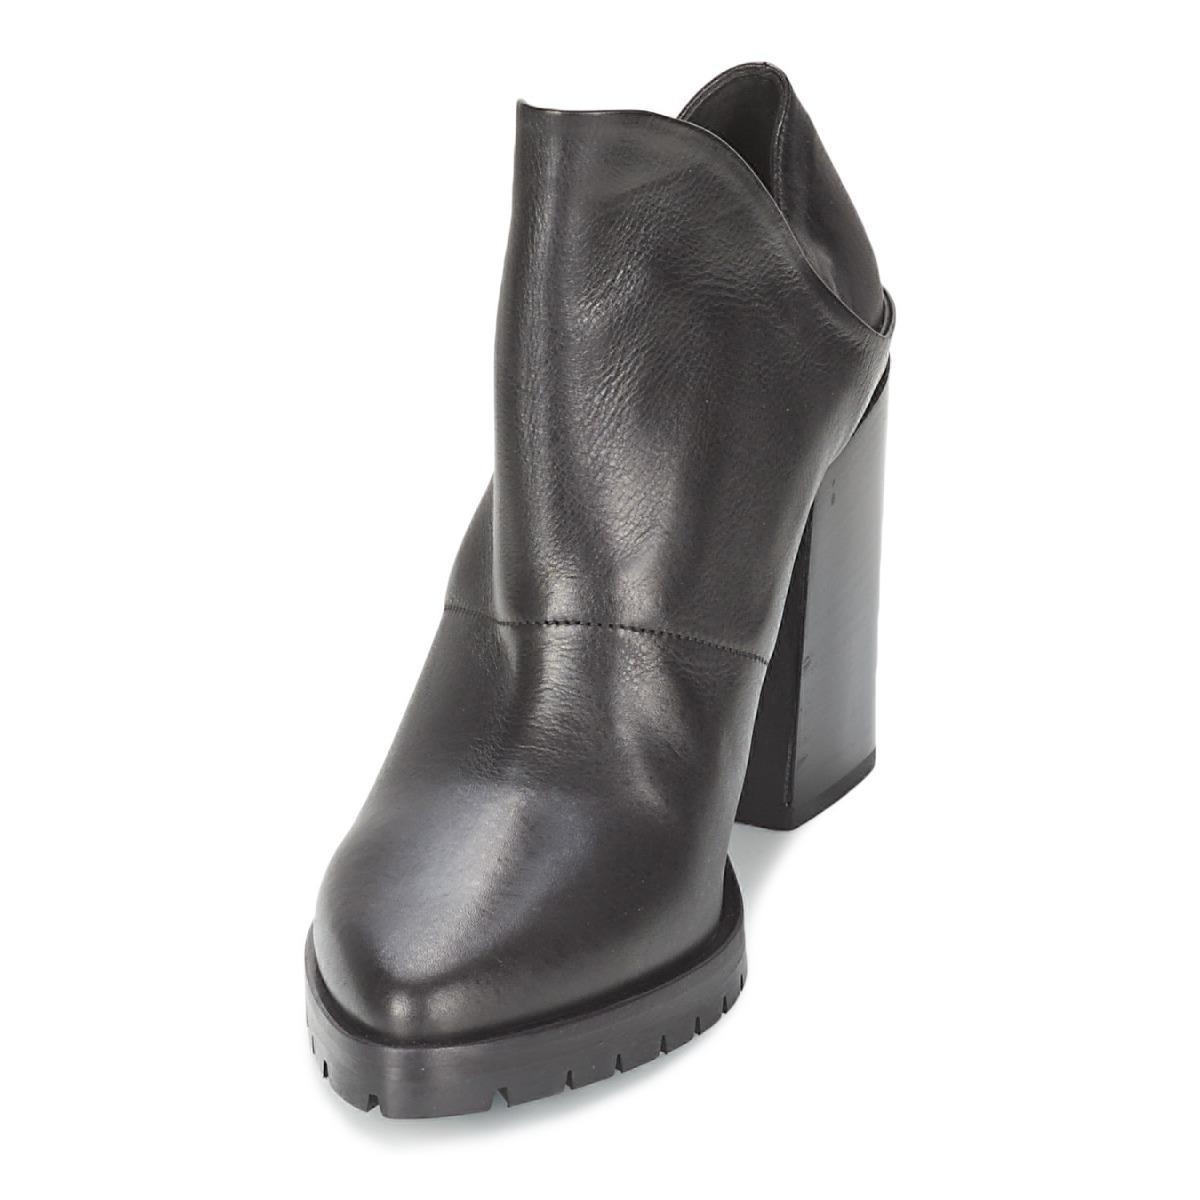 Strategia Taklo Low Ankle Boots in Black - Save 10%